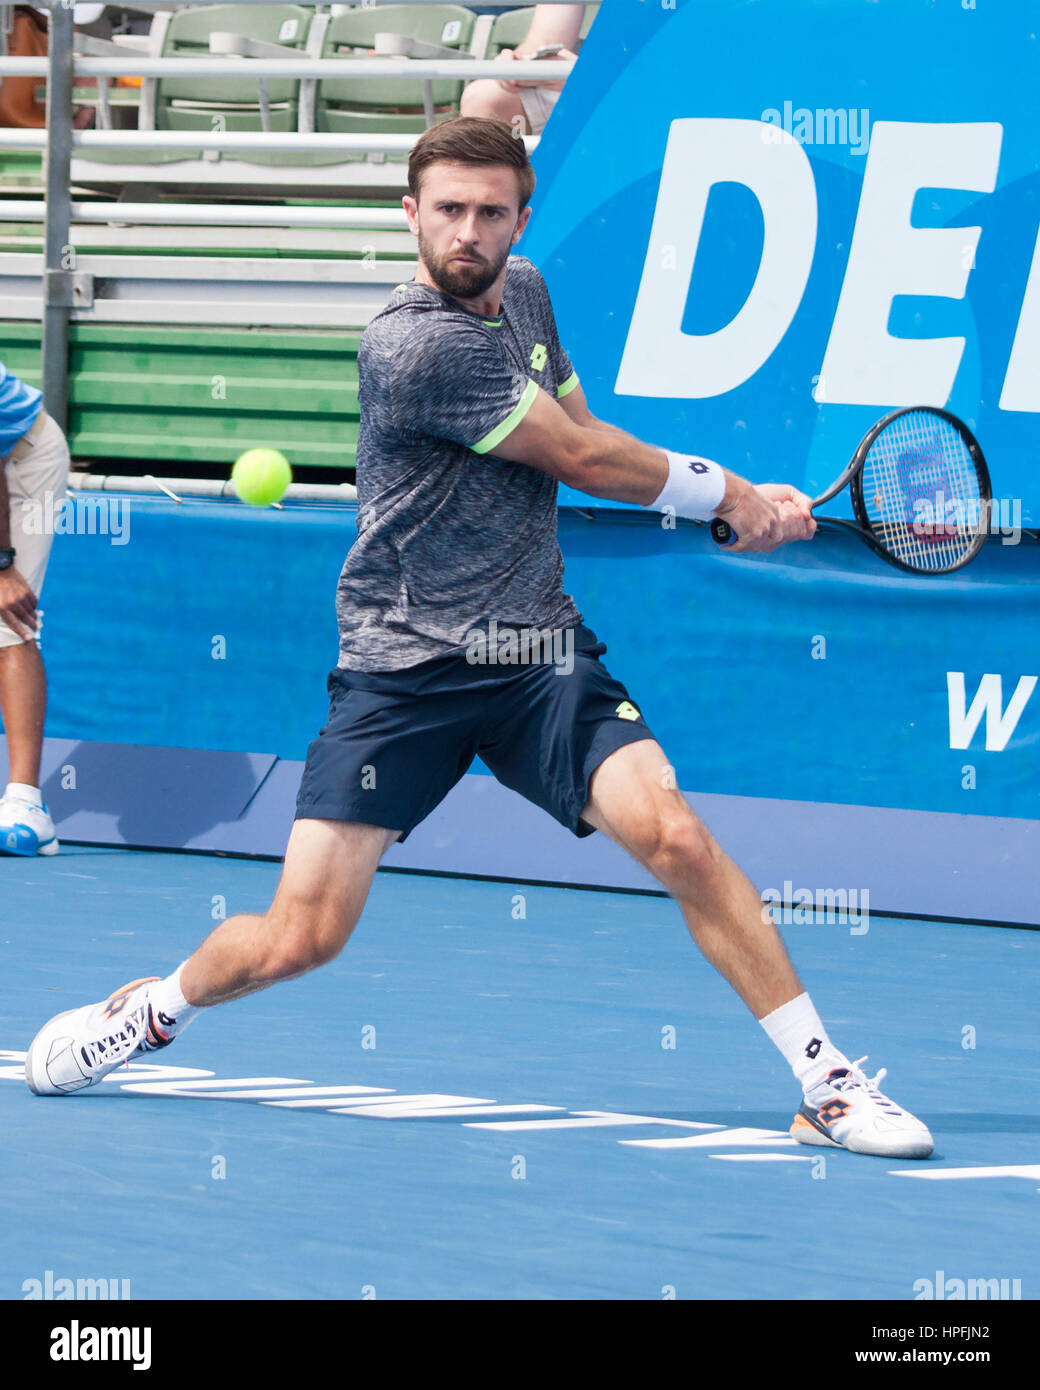 Delray Beach, Palm Beach County, US. 21st Feb, 2017. American tennis pro TIM SMYCZEK in action on court during the Stock Photo